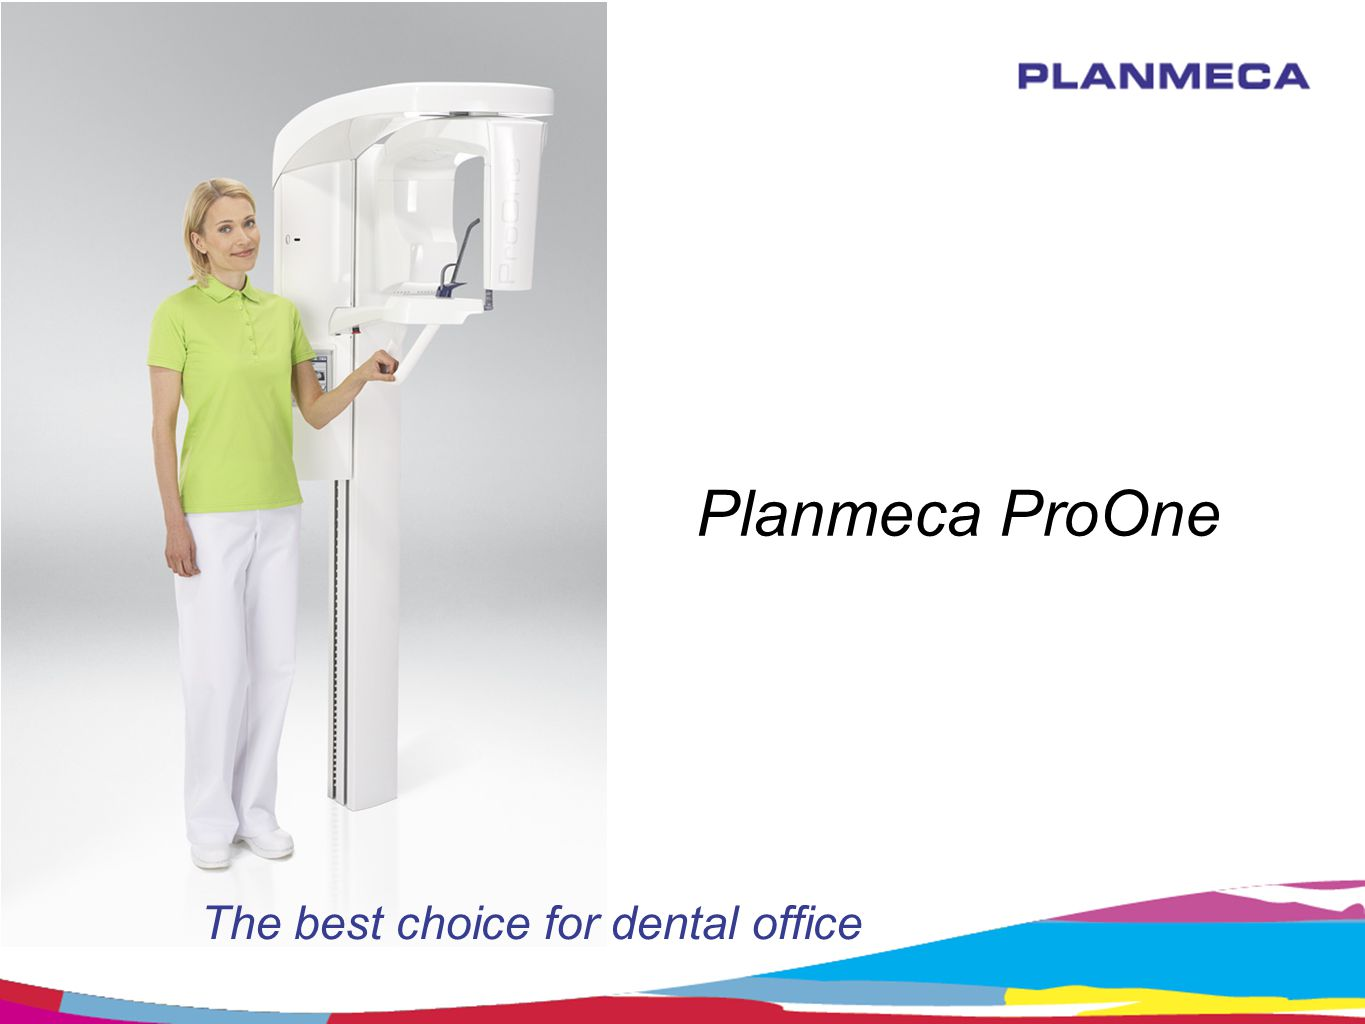 Planmeca ProOne The best choice for dental office